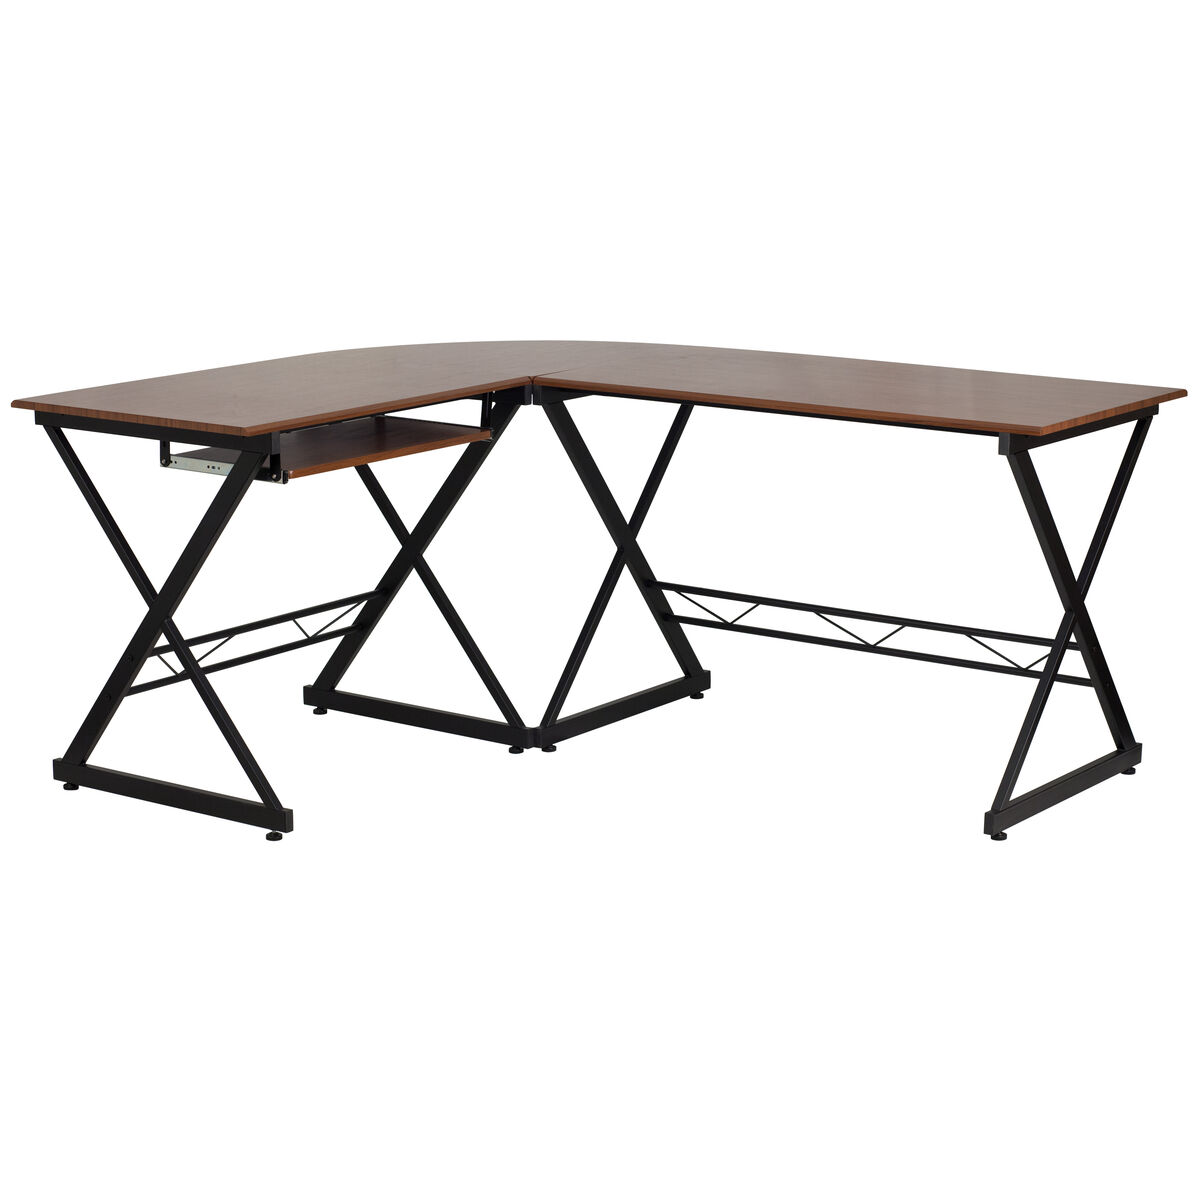 Our Teakwood Laminate L Shape Computer Desk With Pull Out Keyboard Tray Is On